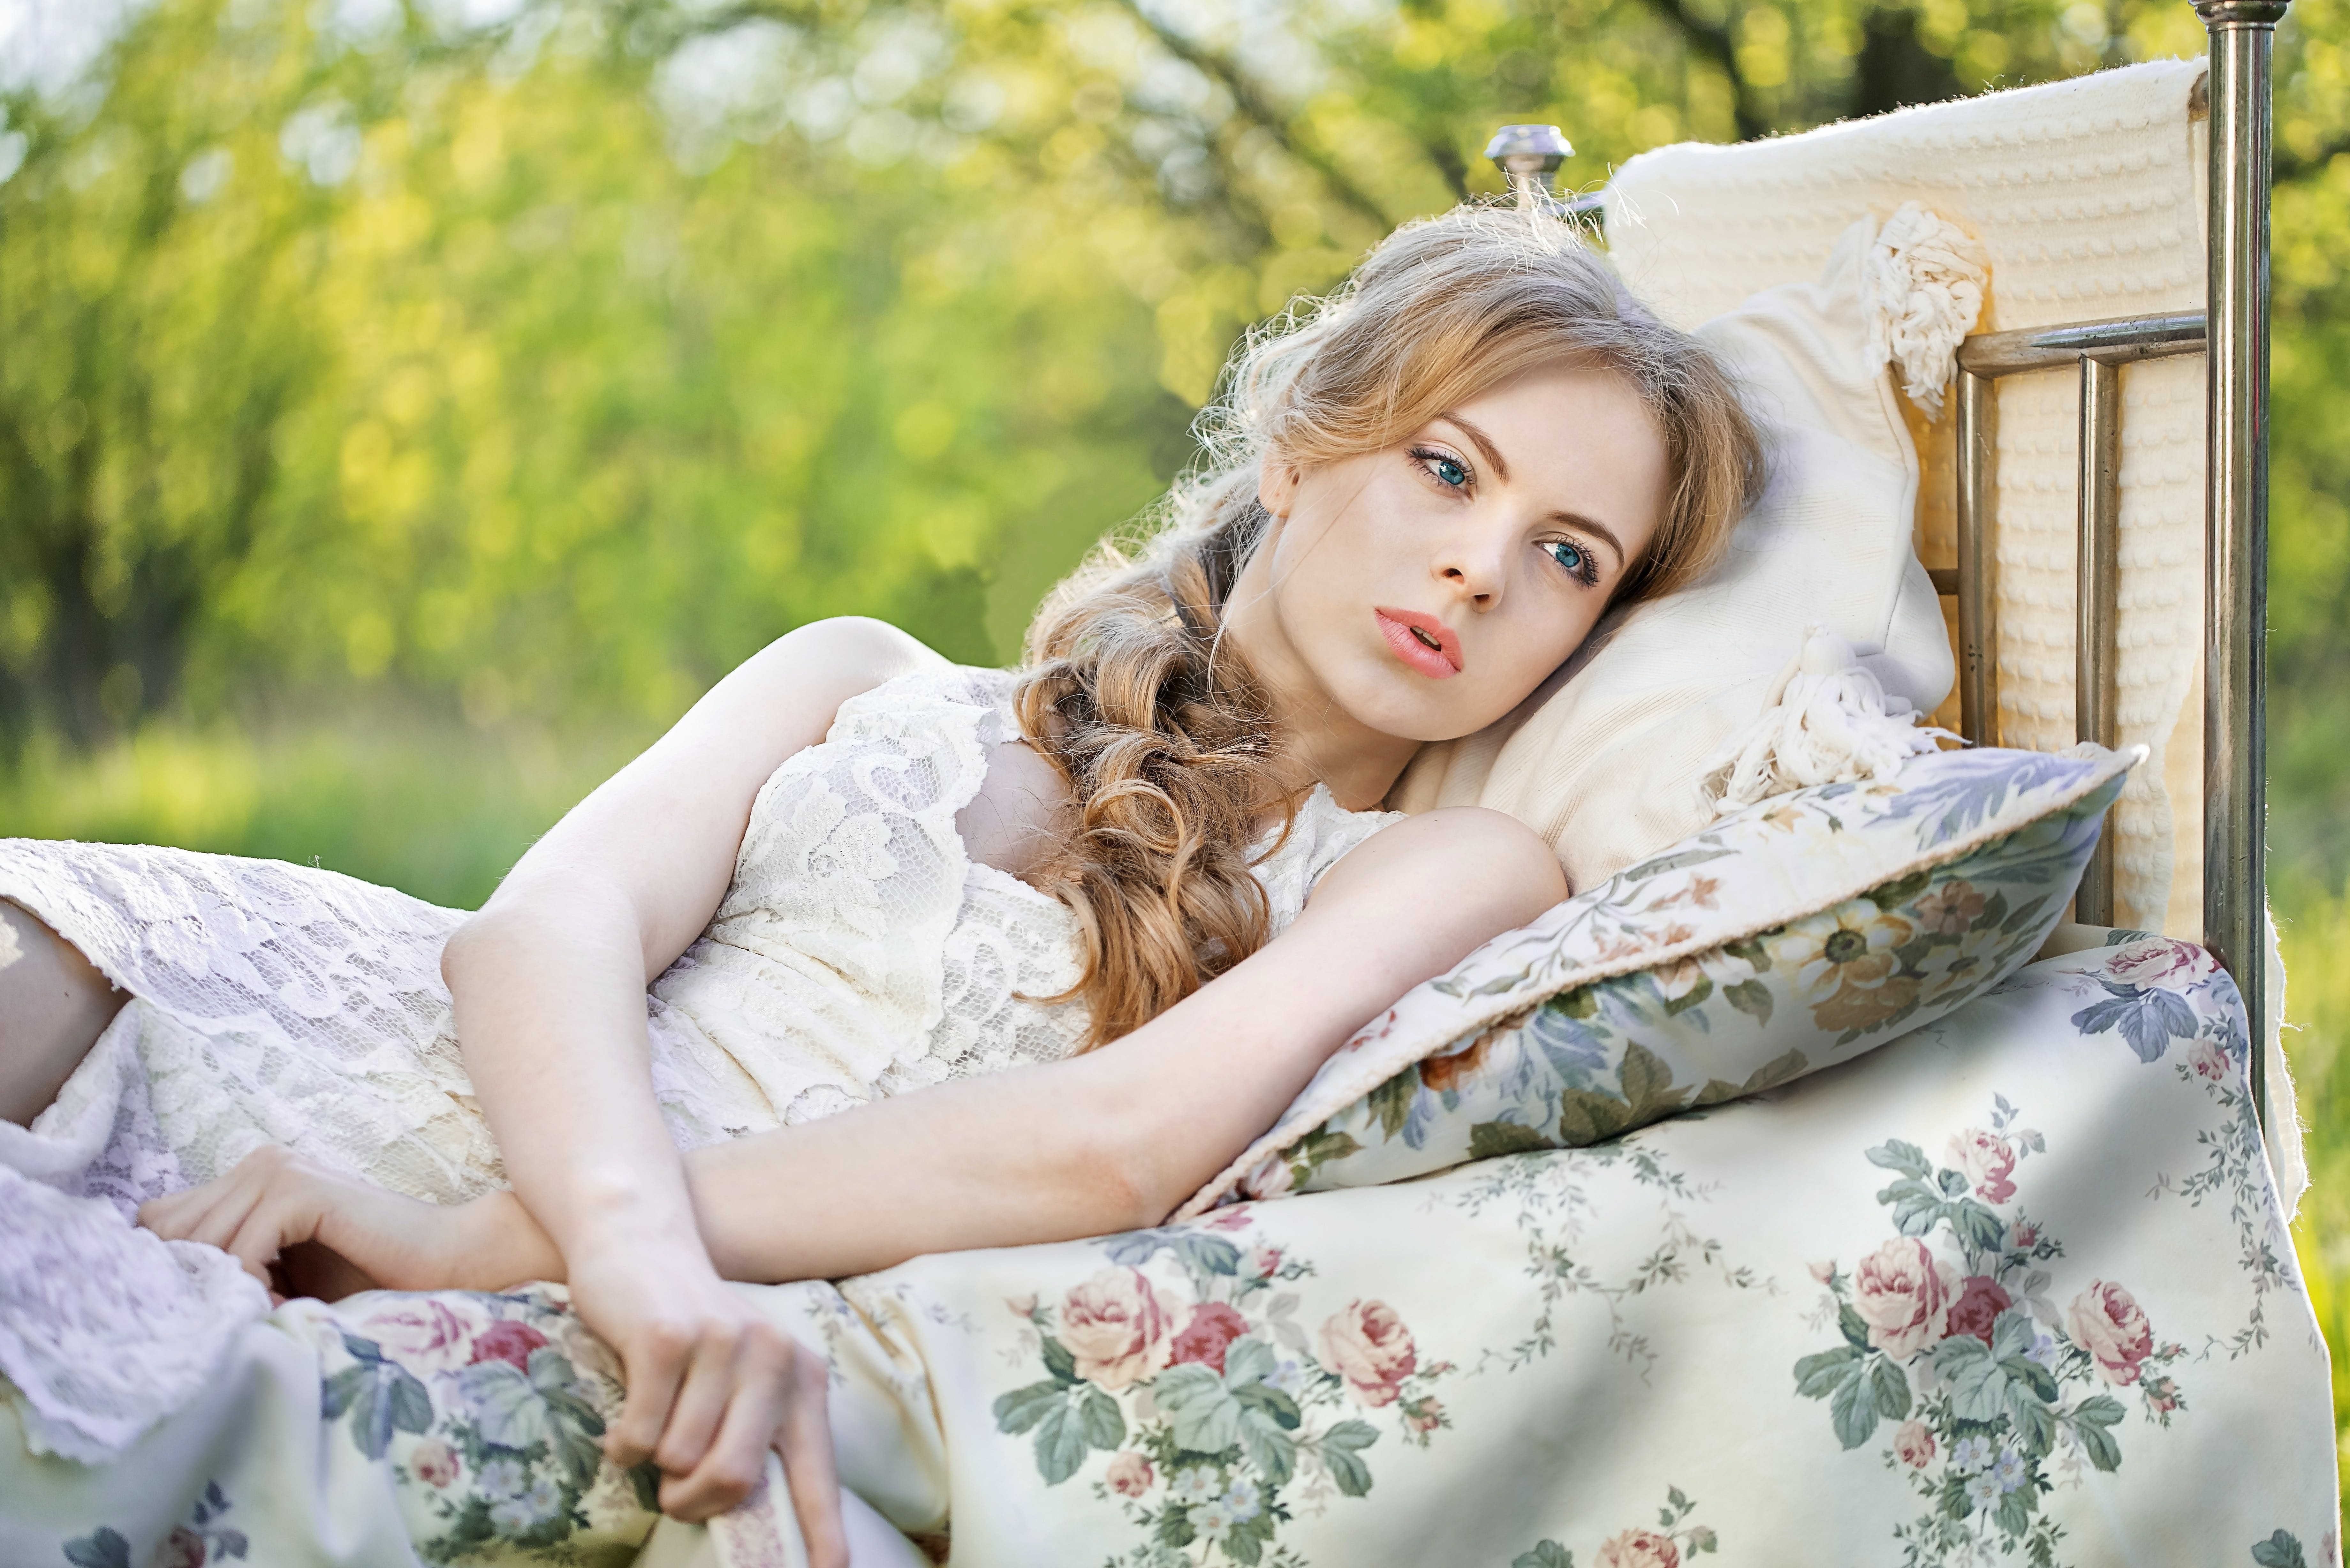 Woman Lying on Blue and White Floral Bed Sheet